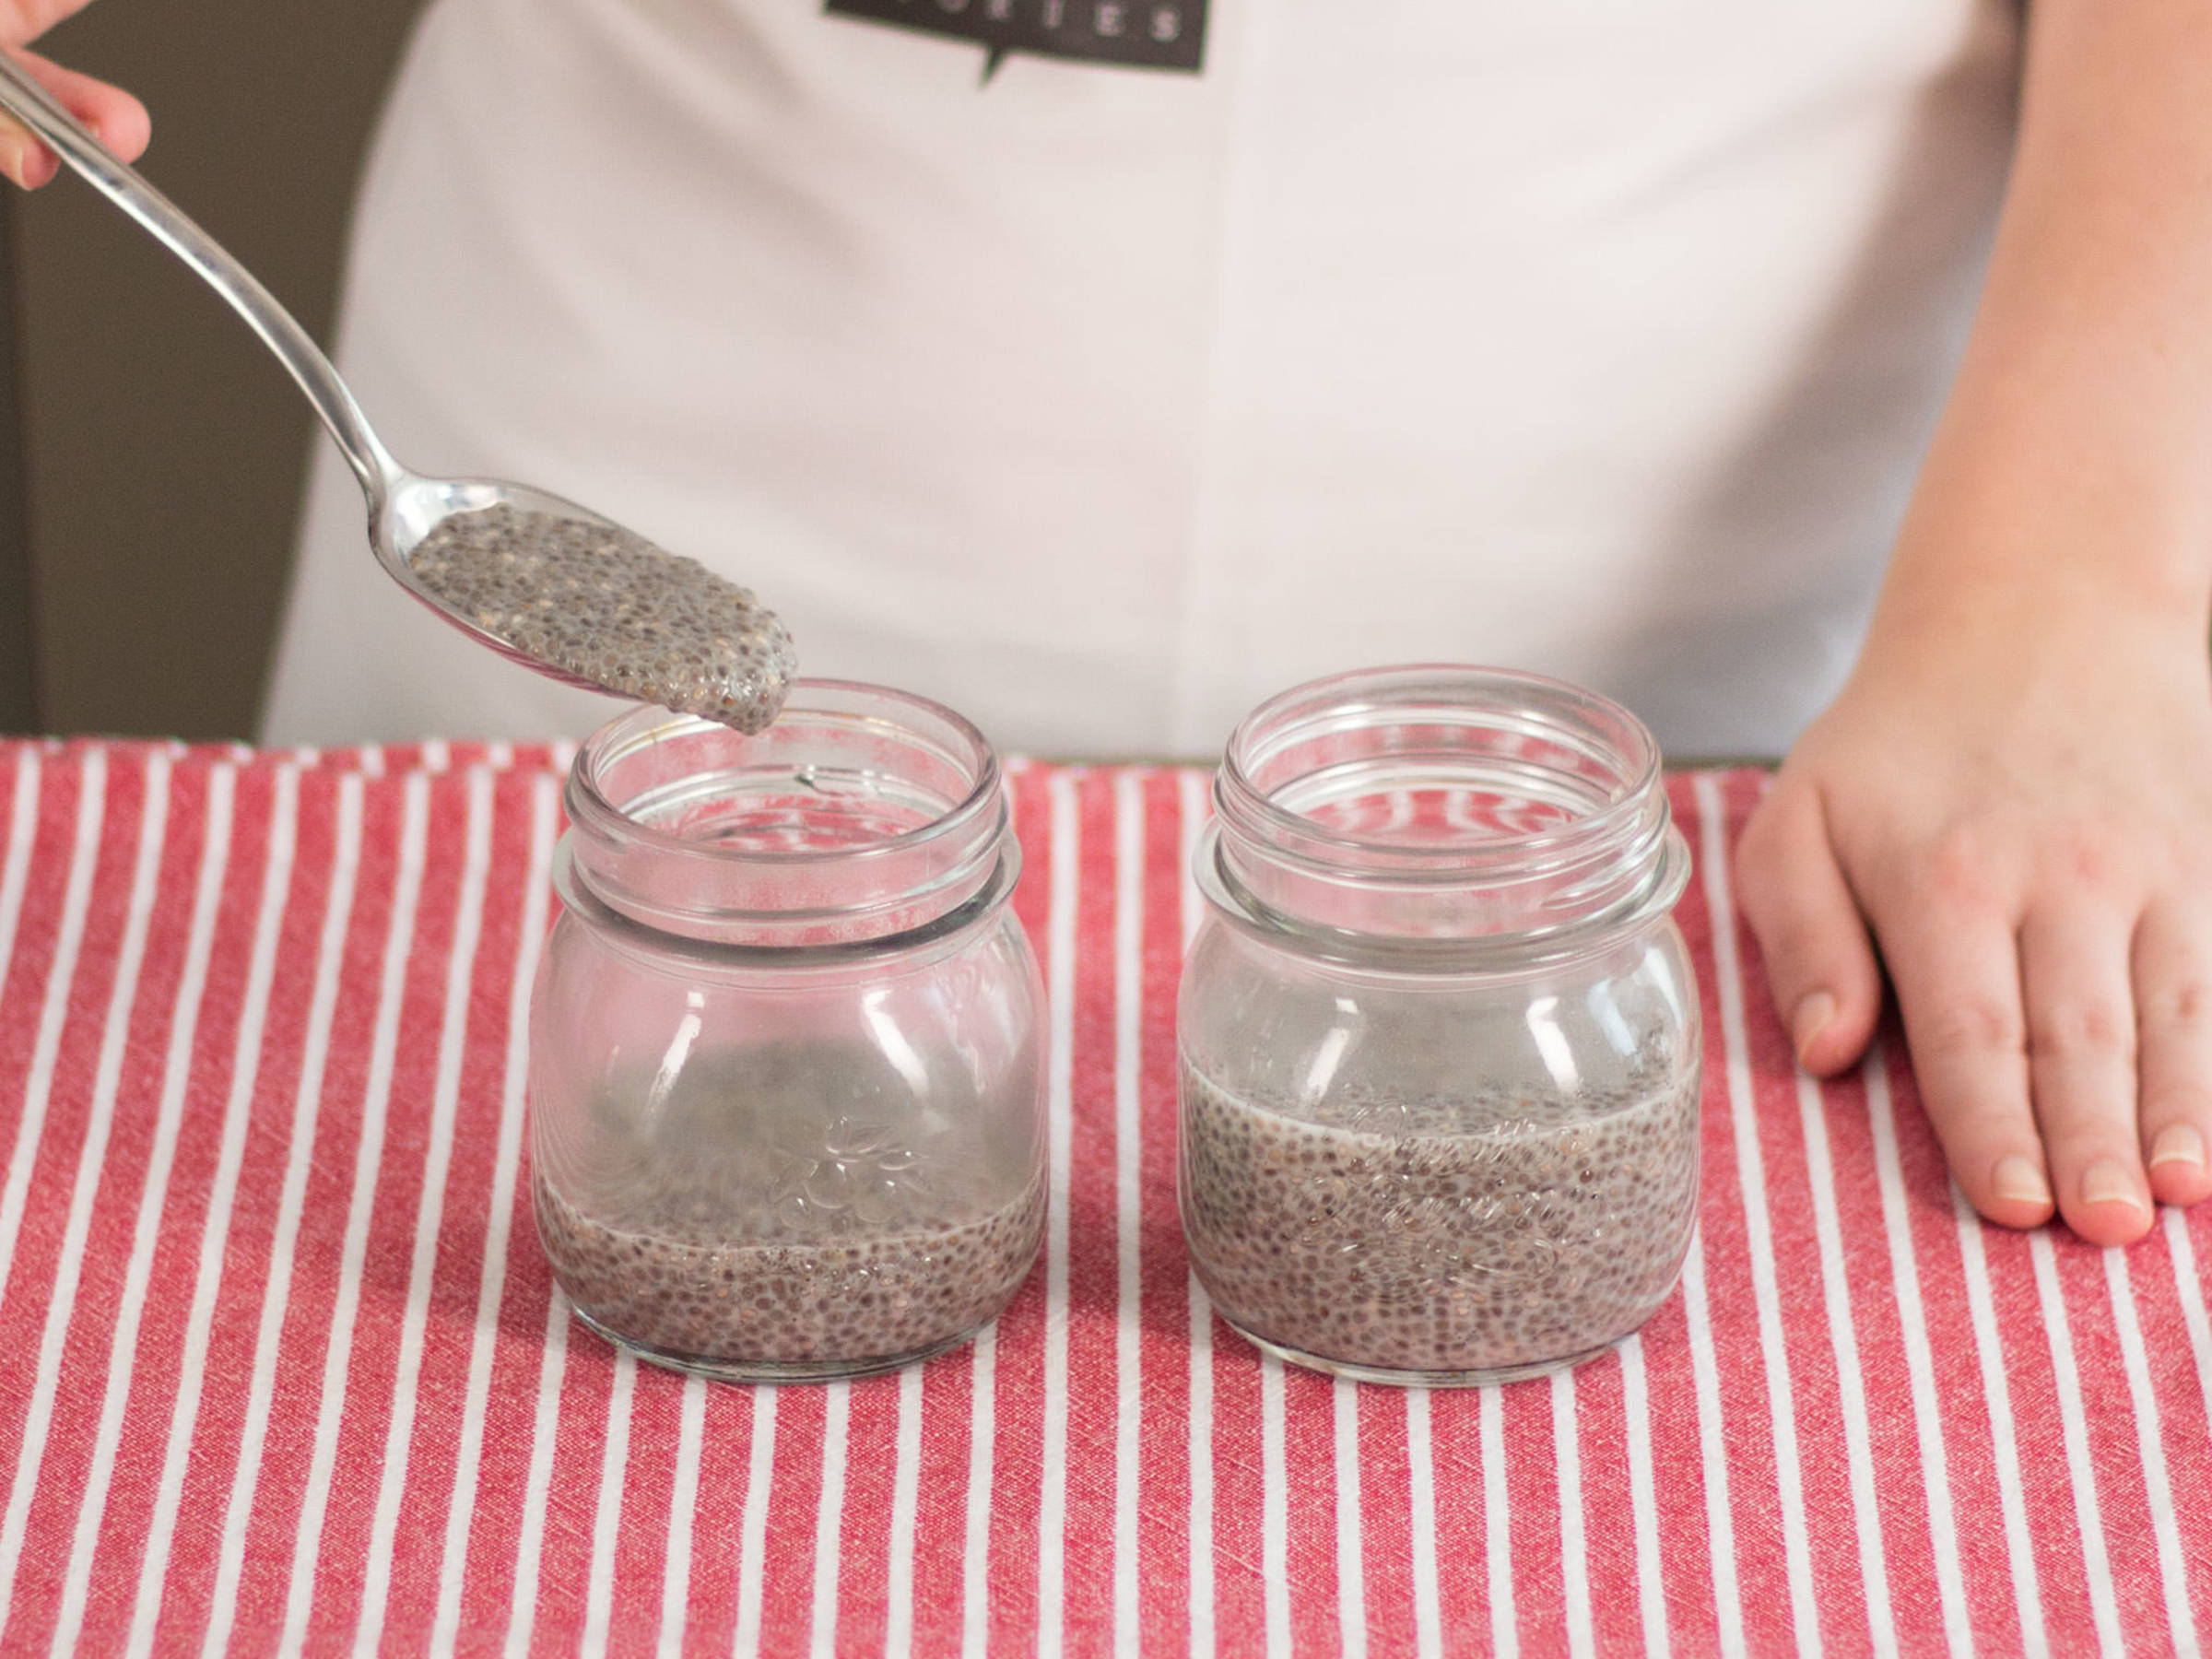 Spoon chia pudding into jars for serving.